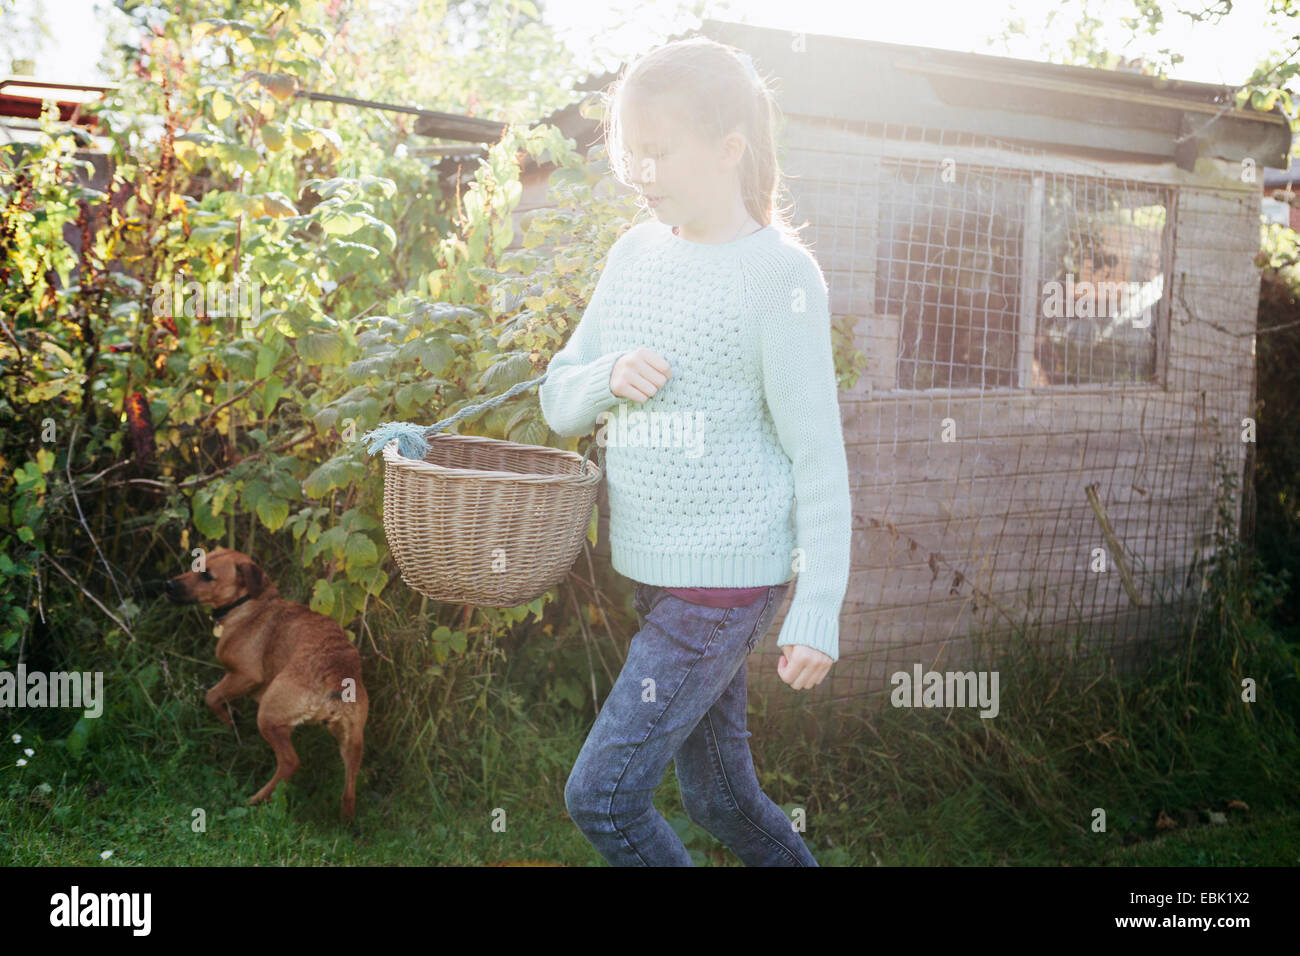 Girl holding basket in garden - Stock Image